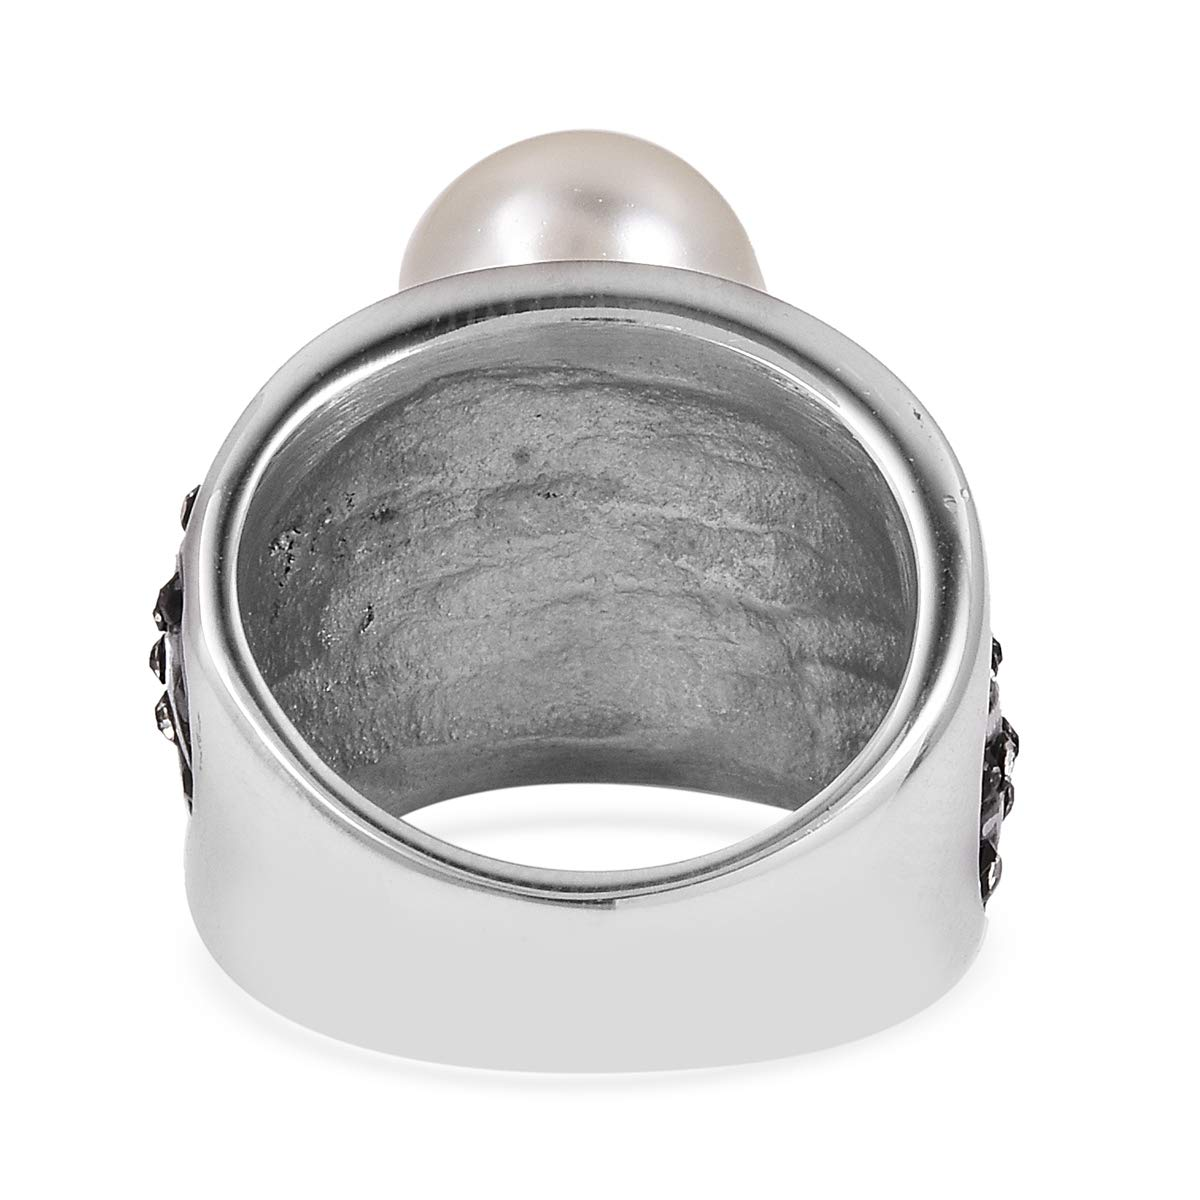 Austrian Crystal Black Oxidized Stainless Steel Ring Hema Treasures White Shell Pearl